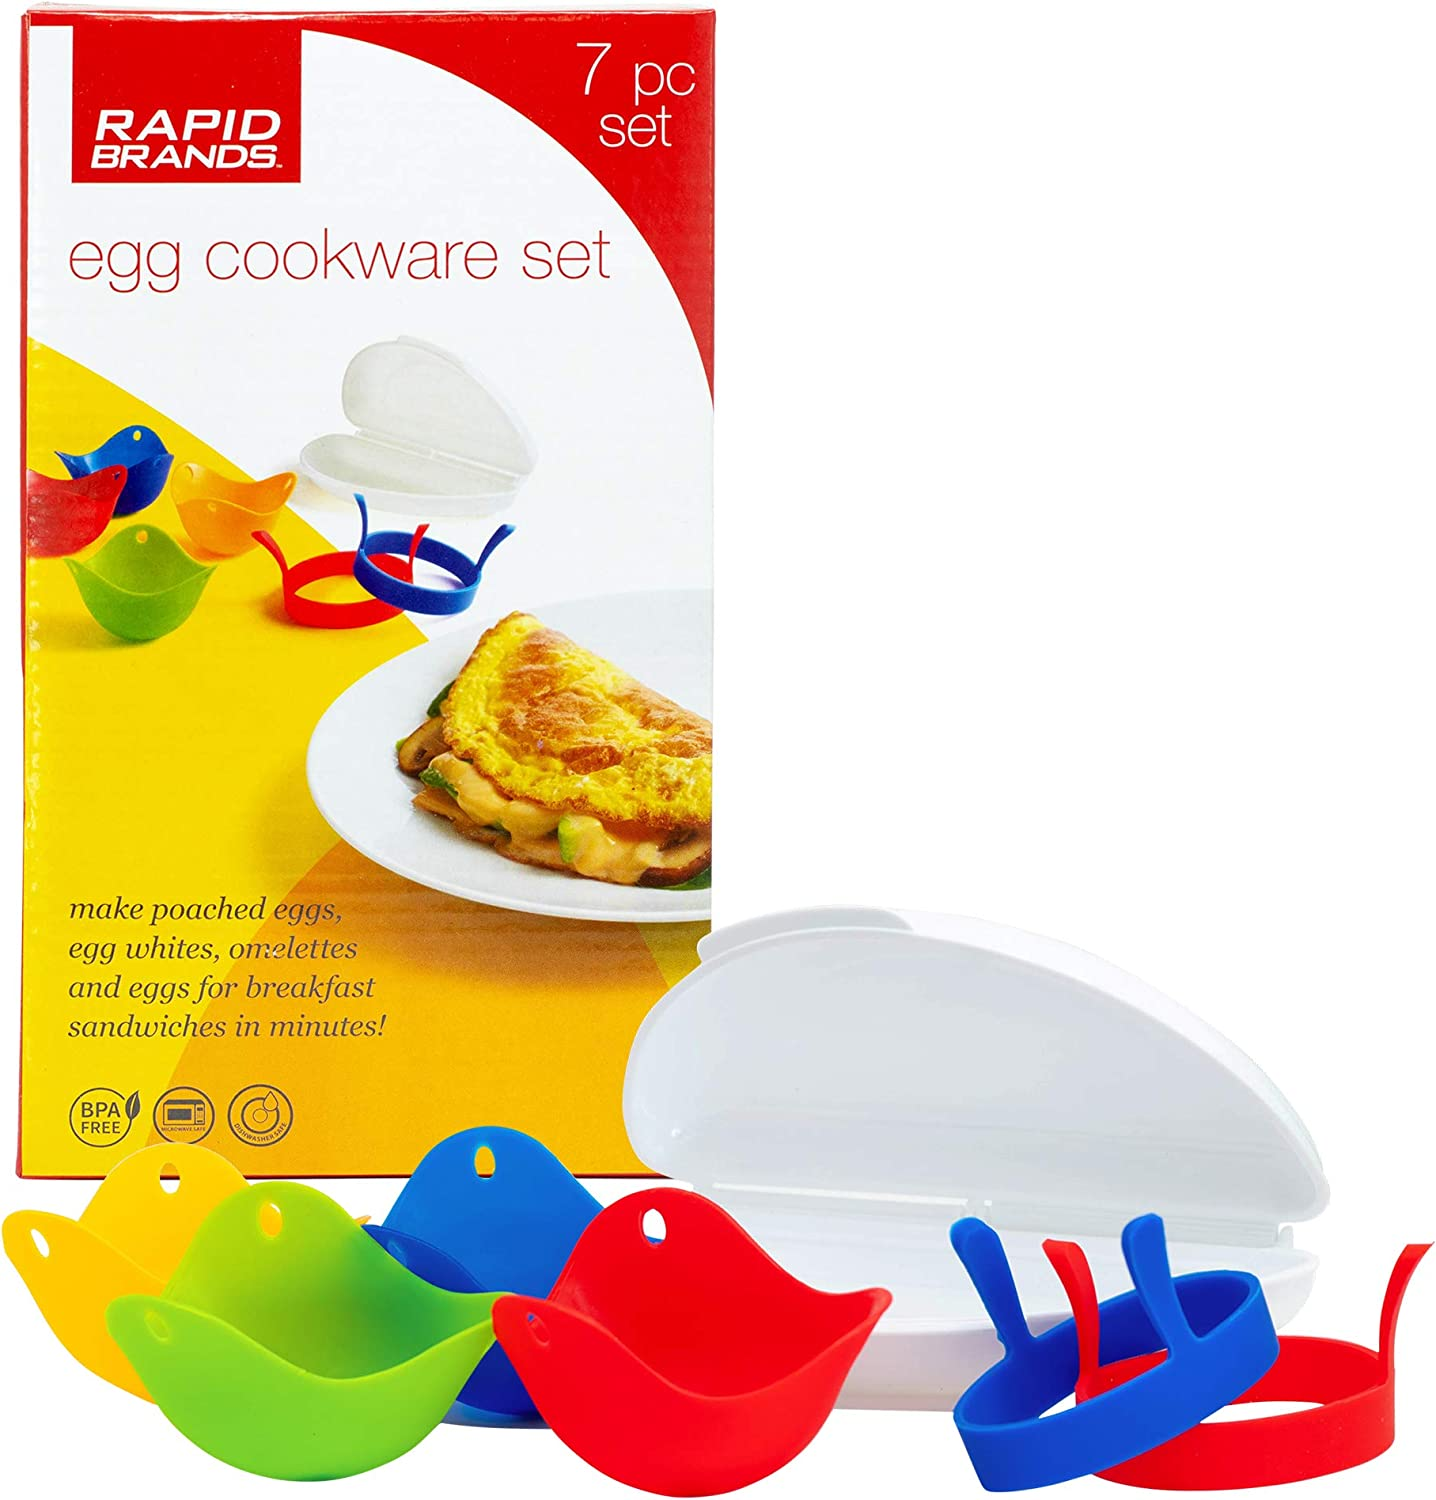 Rapid Brands 7-Piece Microwave Poached Egg & Omelette Cookware Set   Perfect for Dorm, Small Kitchen, or Office   Dishwasher-Safe, Microwaveable, BPA-Free